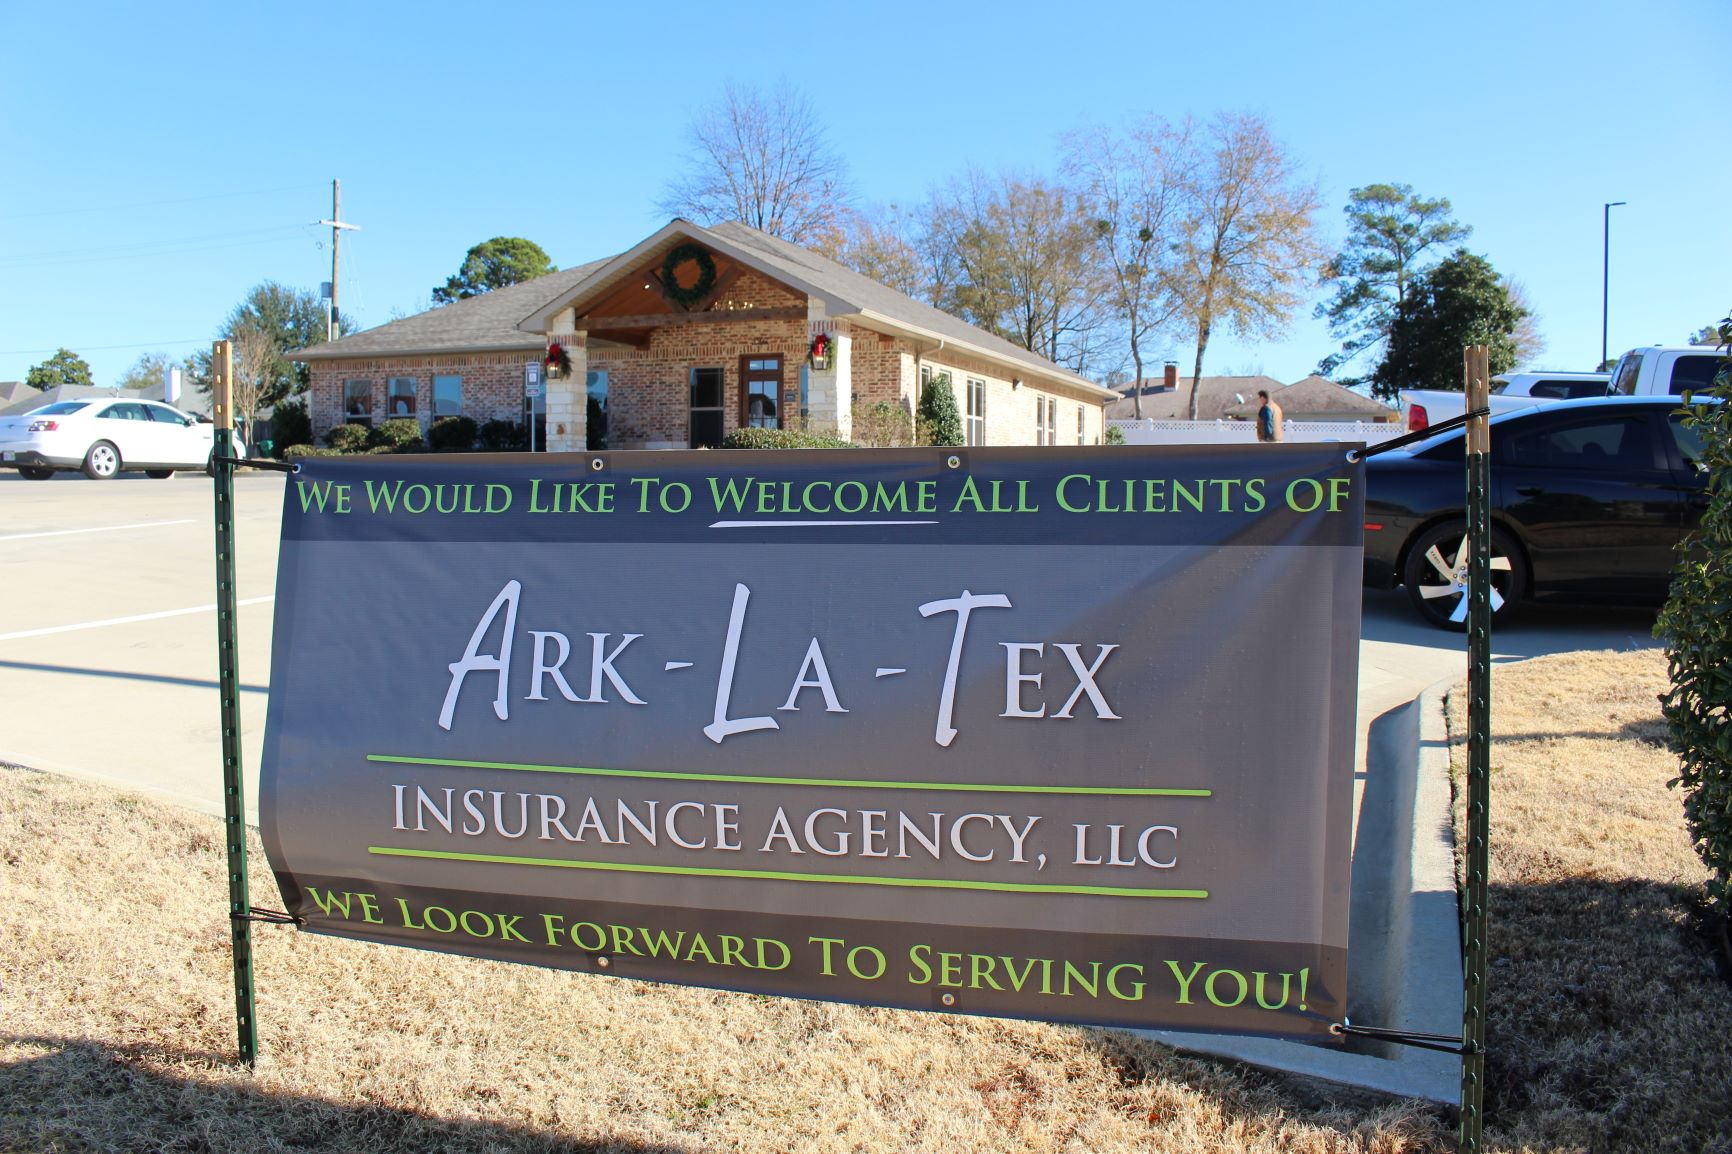 Welcoming our new clients from Ark-La-Tex Insurance